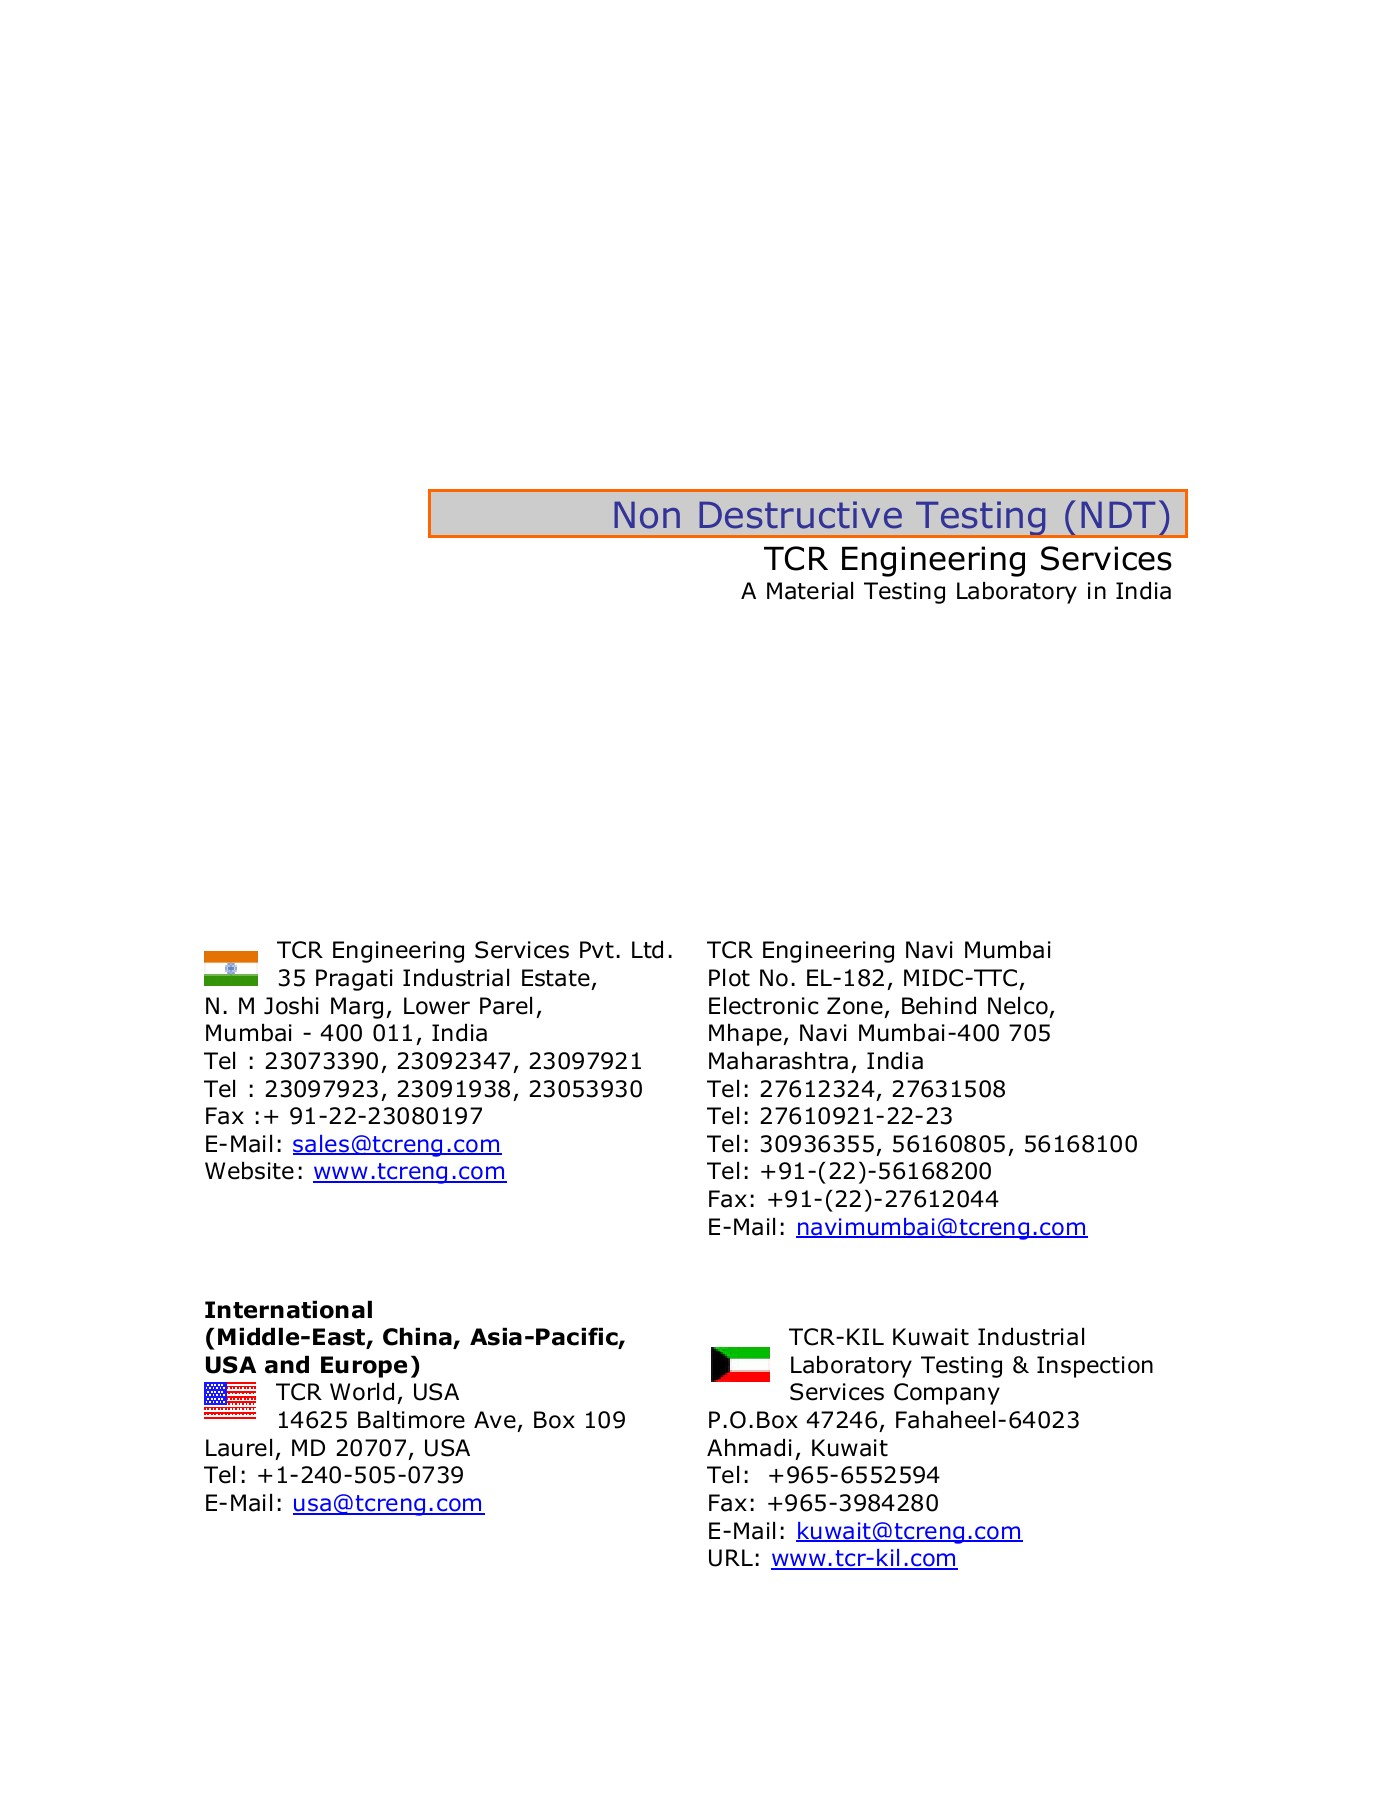 Non Destructive Testing (NDT) - TCR ENGINEERING LIMITED